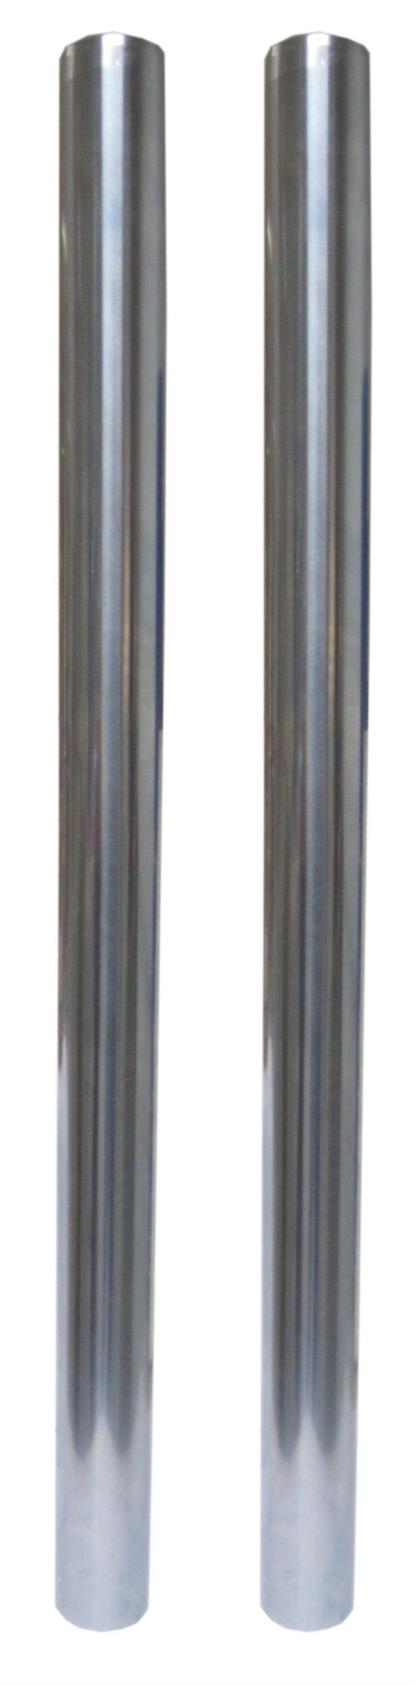 Picture of Front Fork Stanchions Only Ka wasaki H2 750 1972-1975 36mm (Pair)